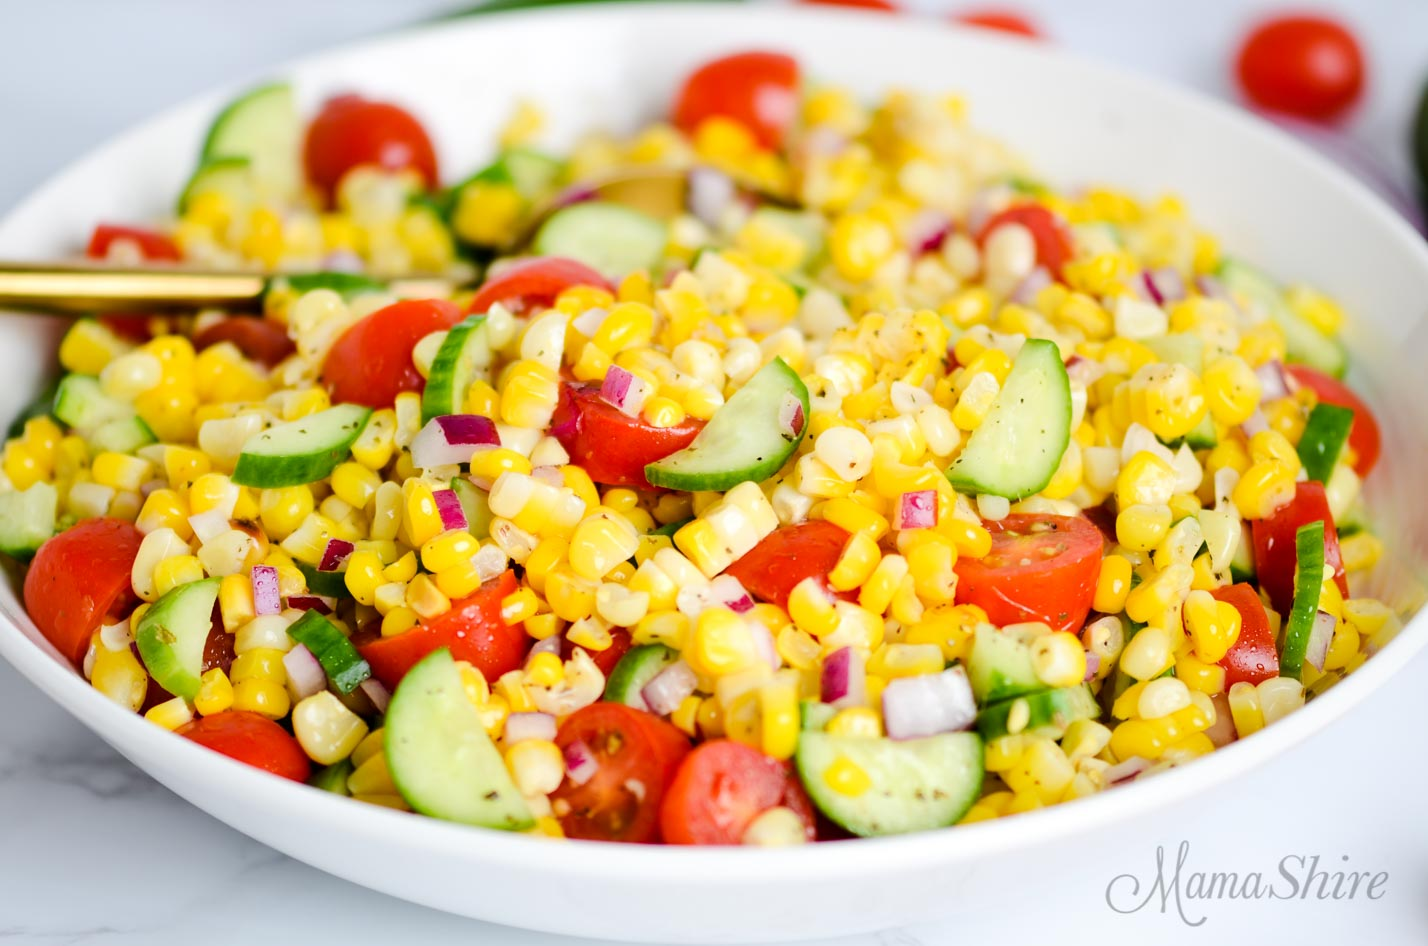 Corn salad made with mini cucumbers and tomatoes.